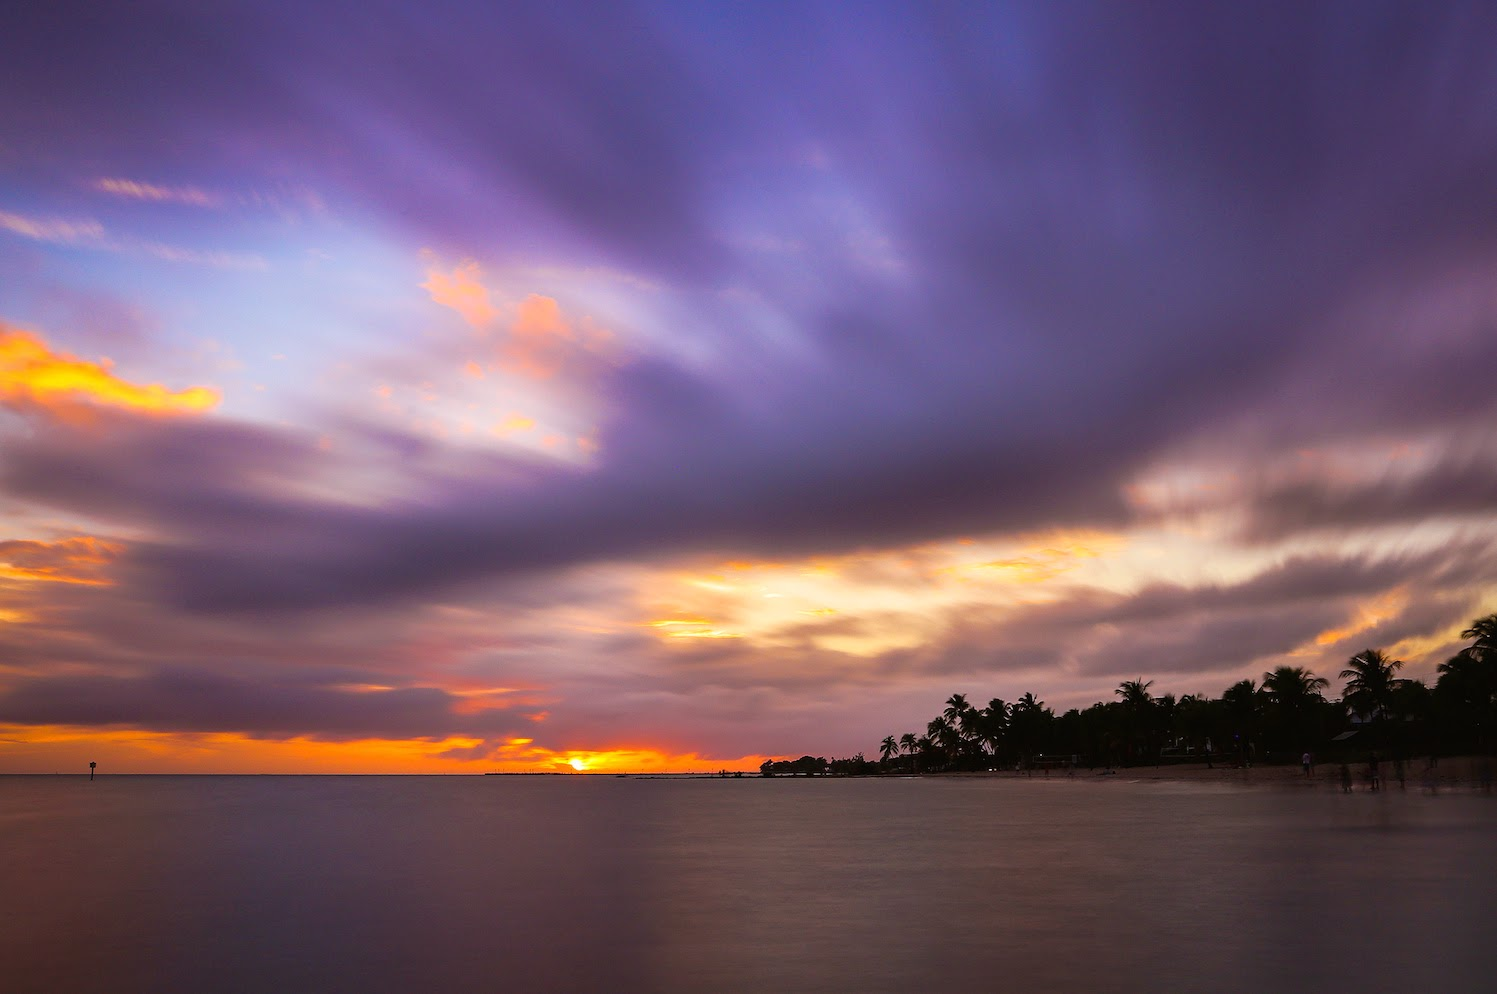 Il tramonto a Key West, by Joe Parks